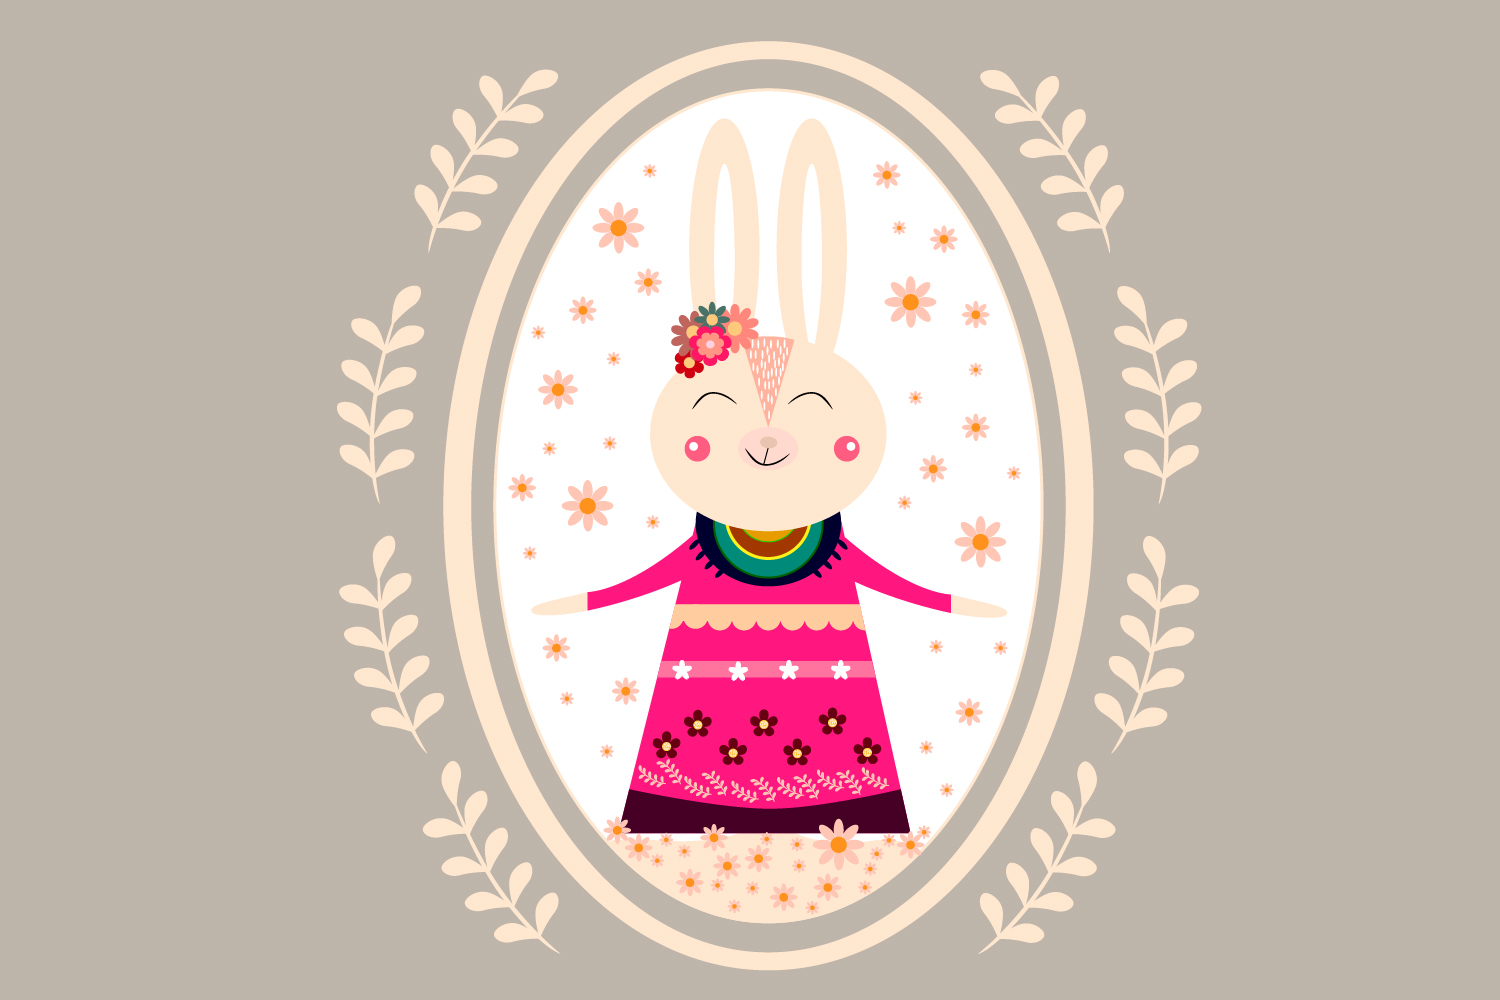 Download Free Easter Bunny Bunny Illustration Graphic By Igraphic Studio for Cricut Explore, Silhouette and other cutting machines.